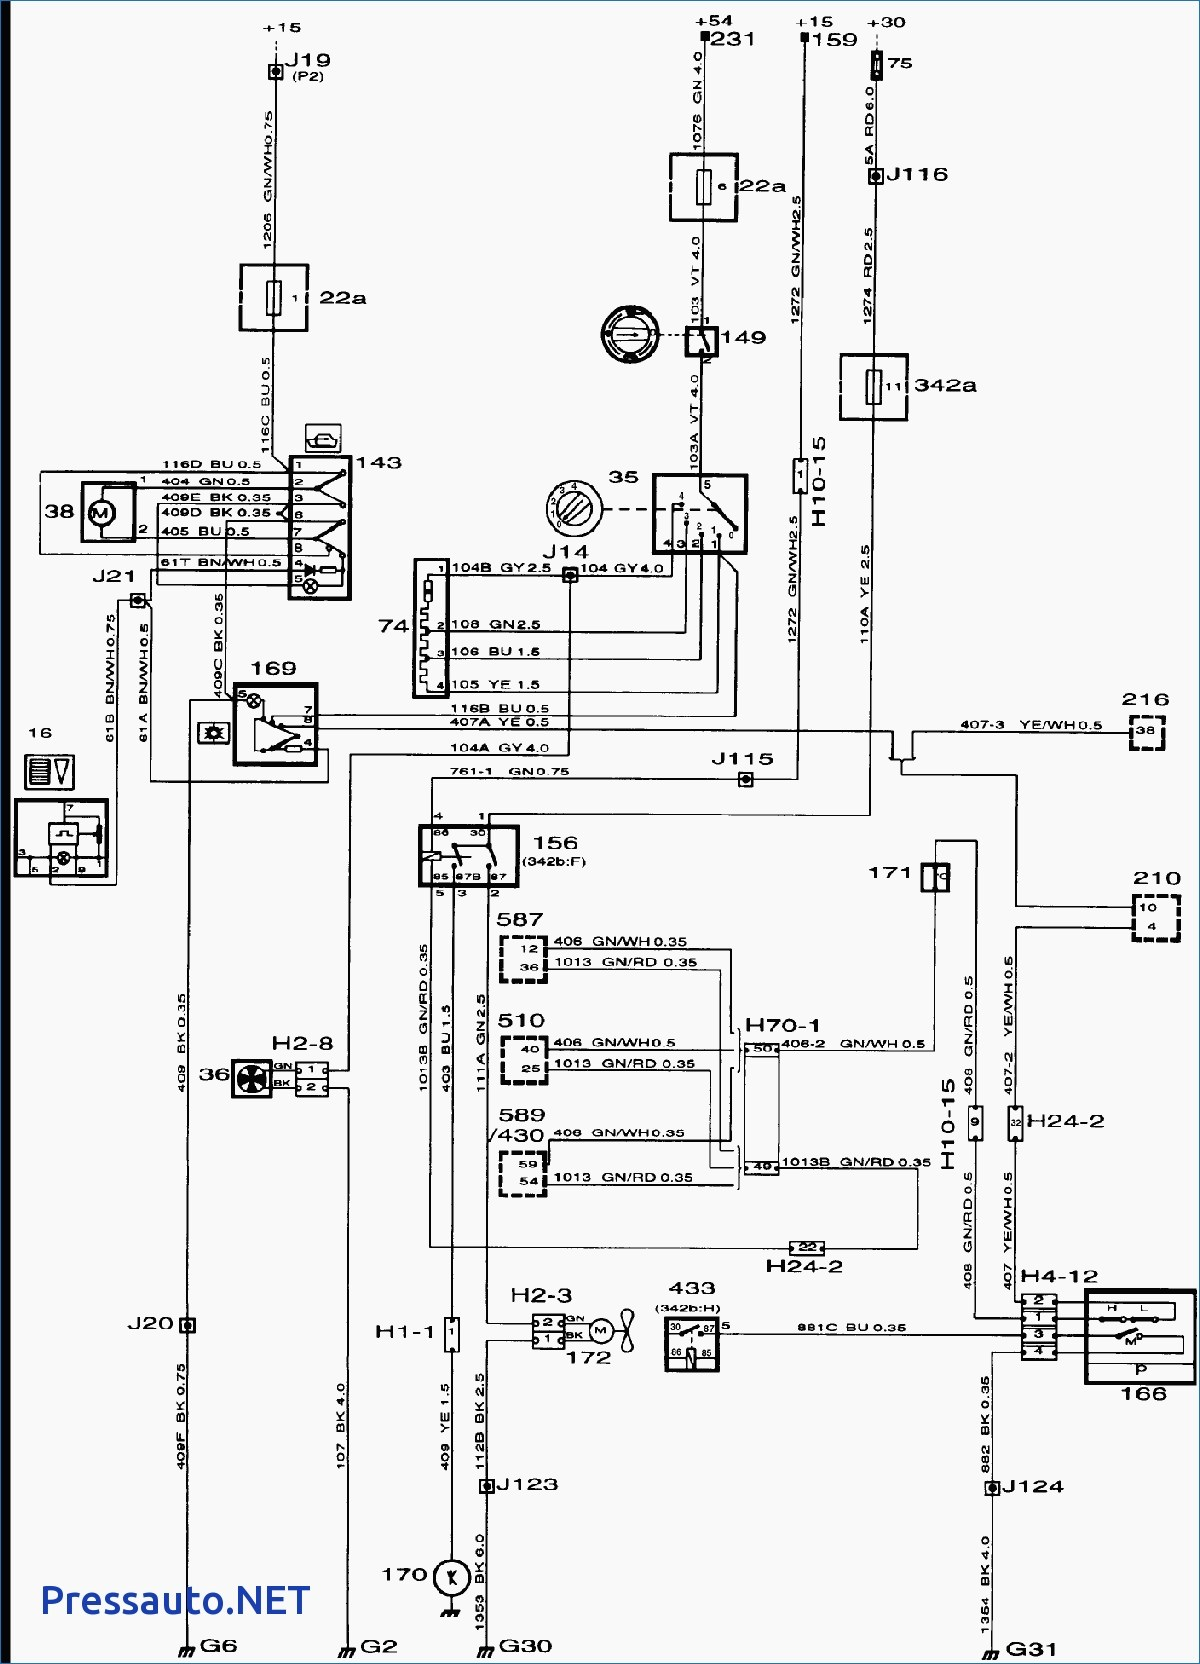 electrical drawing at getdrawings free for personal use Electrical Breaker Box Diagram 1200x1664 whole house electrical wiring diagram